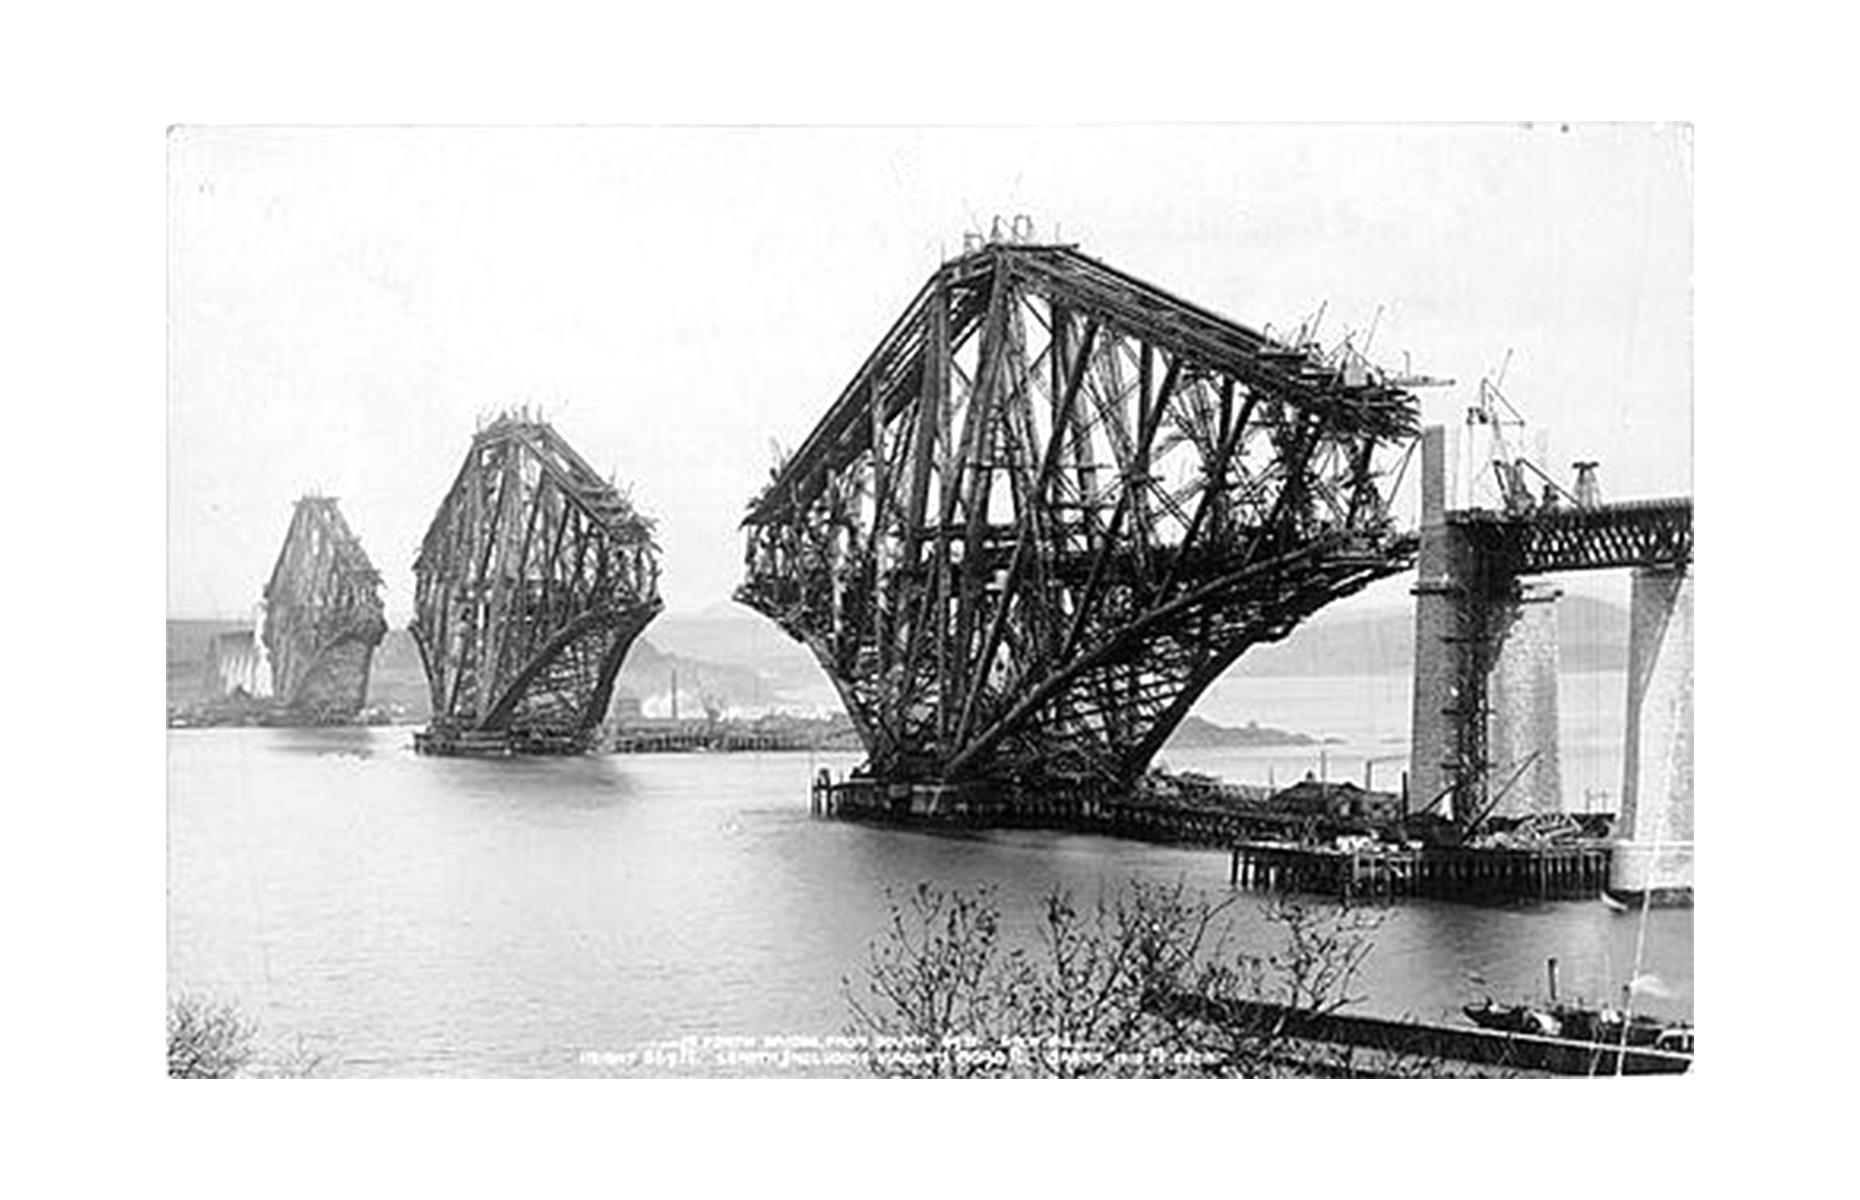 Slide 29 of 41: Some 4,000 workers were employed at the peak of the bridge's construction, and sadly 57 of them lost their lives during the process. The resulting structure, today a UNESCO World Heritage Site, remains a striking tribute to them. It's pictured here circa 1888, a couple of years before its completion.